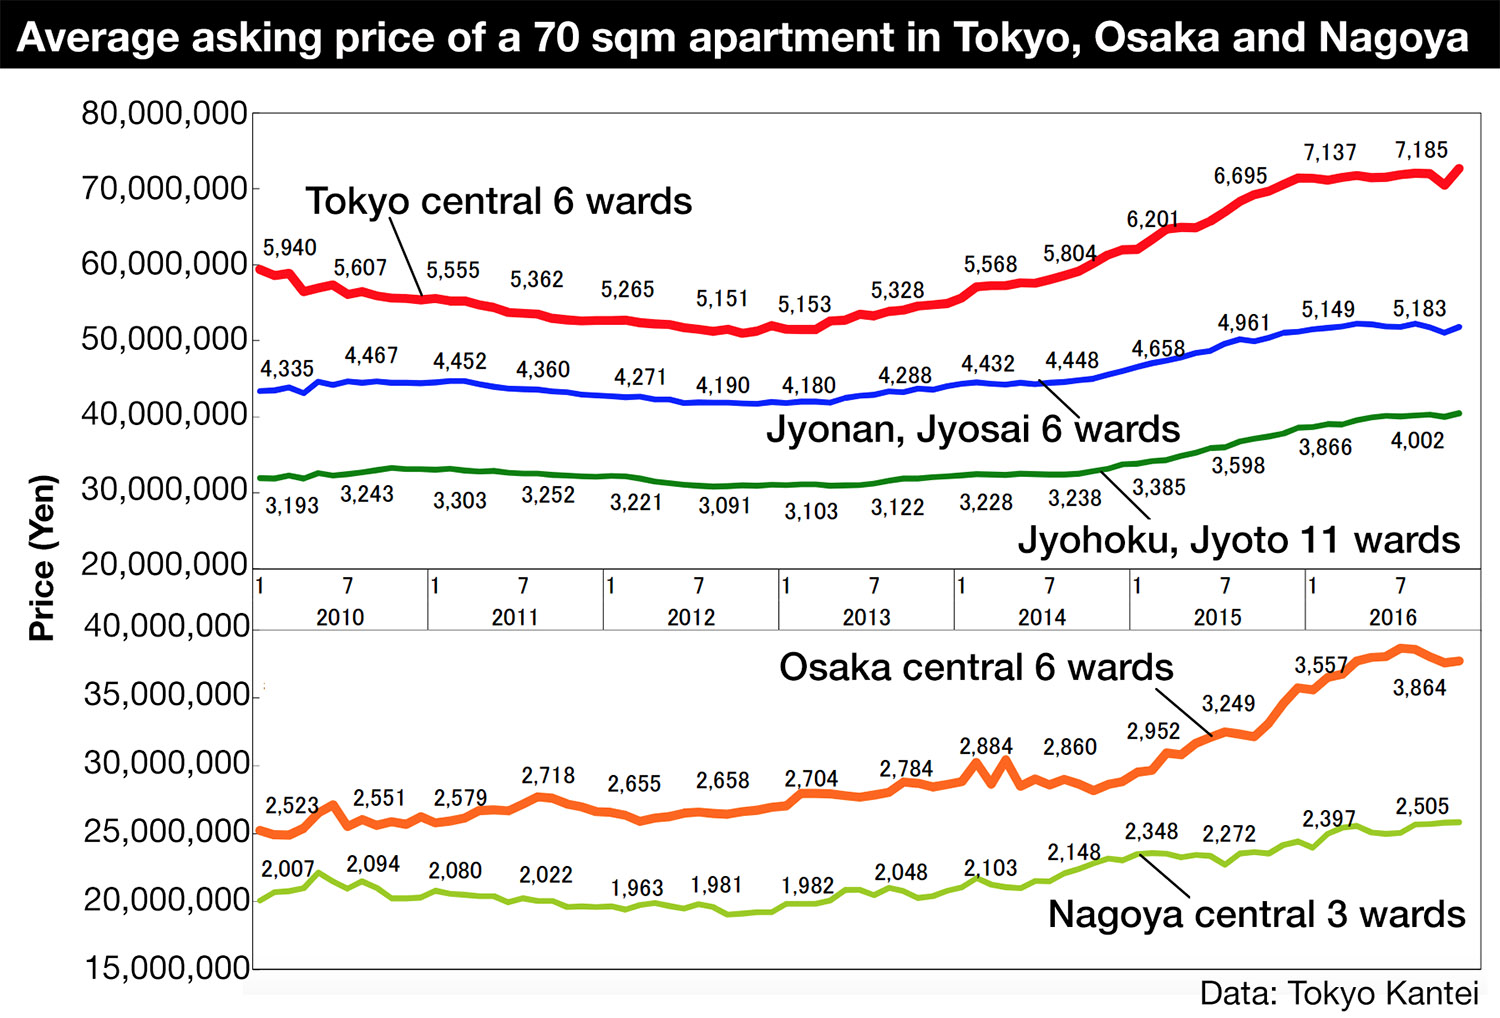 Tokyo apartment asking prices in November 2016